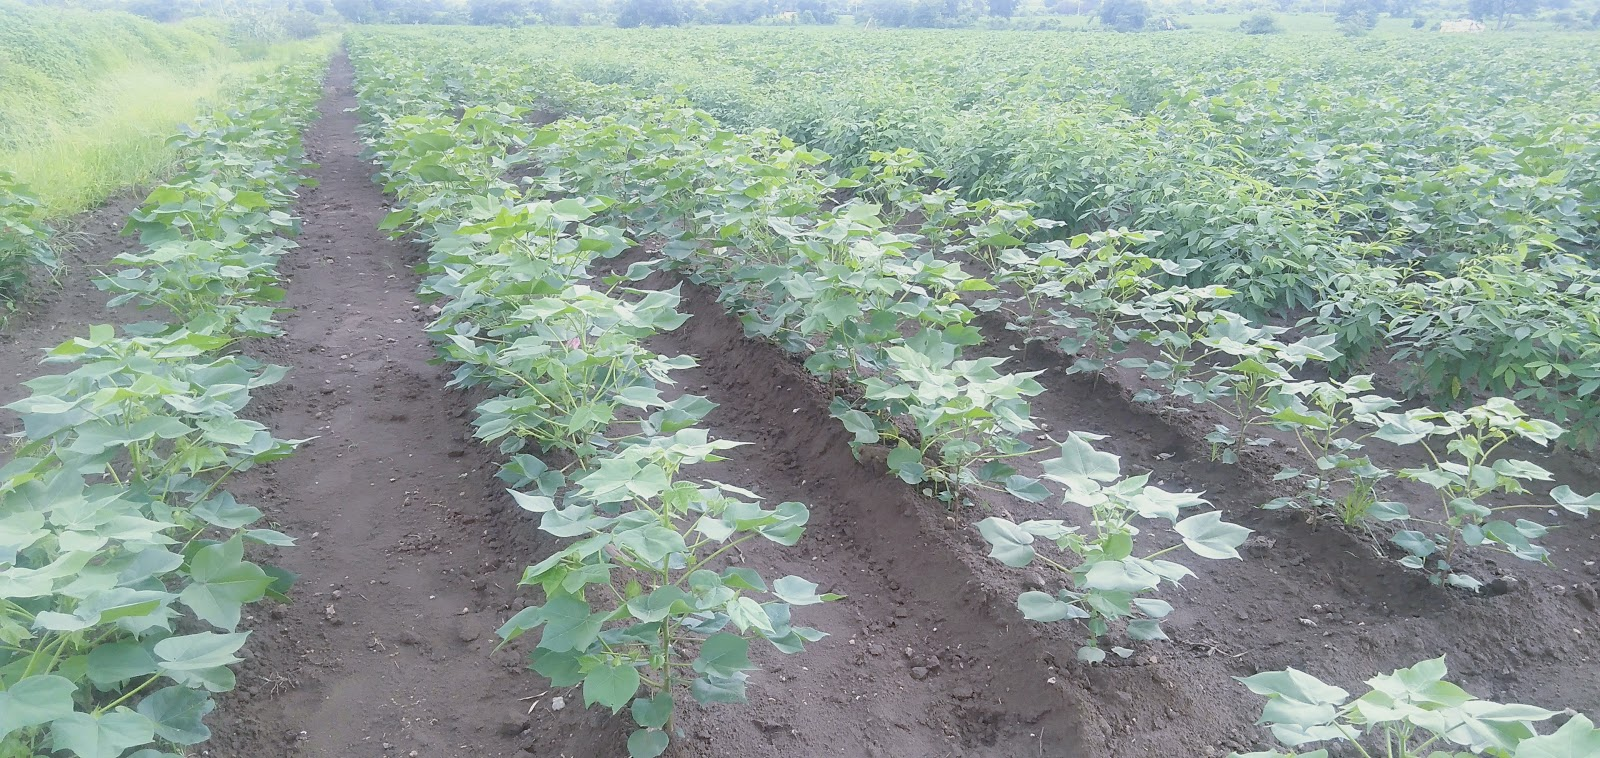 Furrows drawn in cotton fields promote irrigation efficiency. Photo credit: Institute for Sustainable Communities